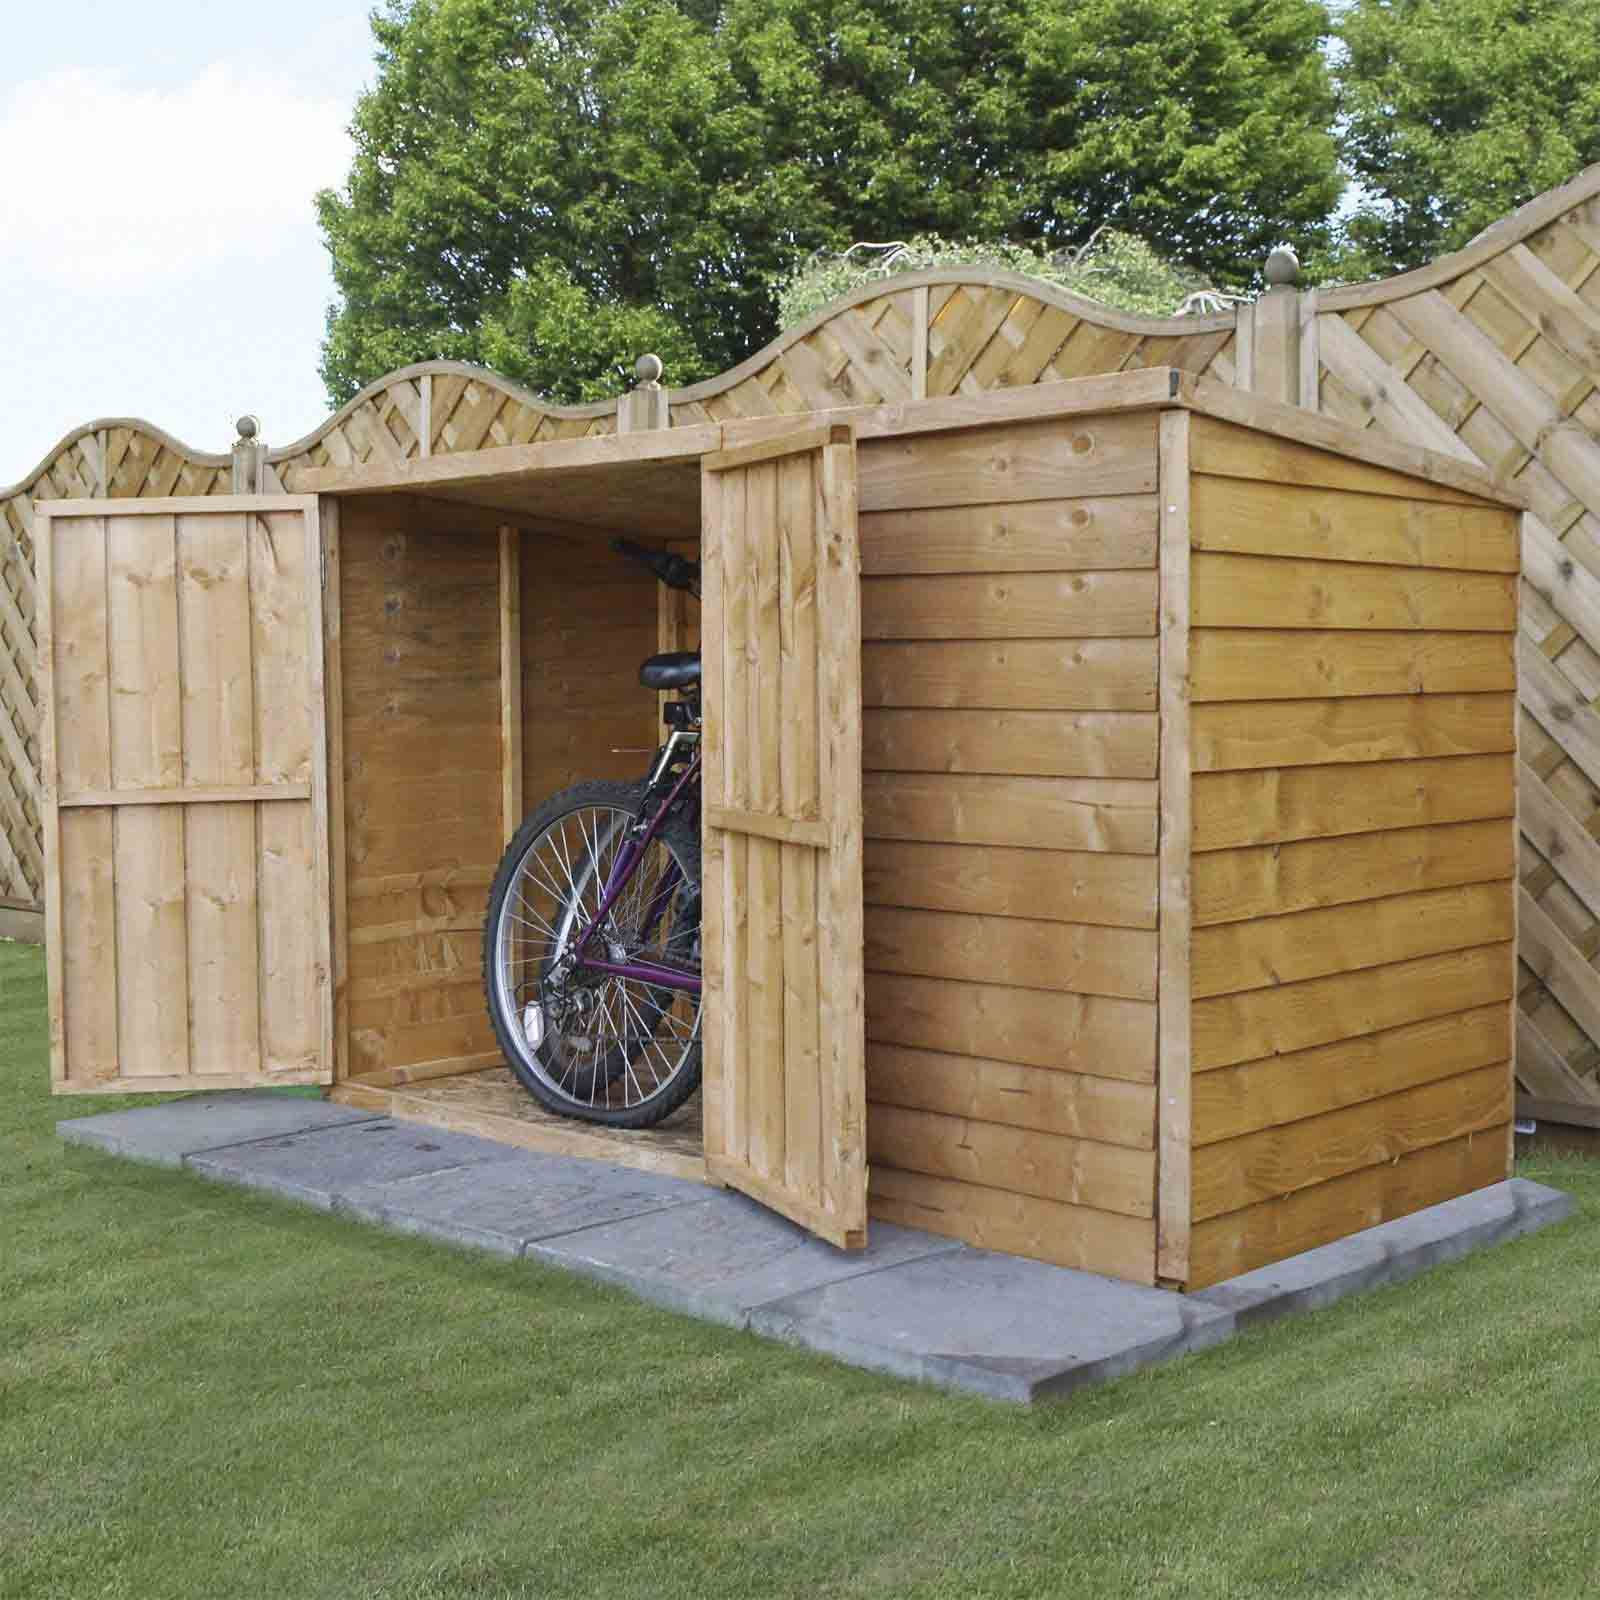 6 x 3 Wooden Garden Pent Bike Storage